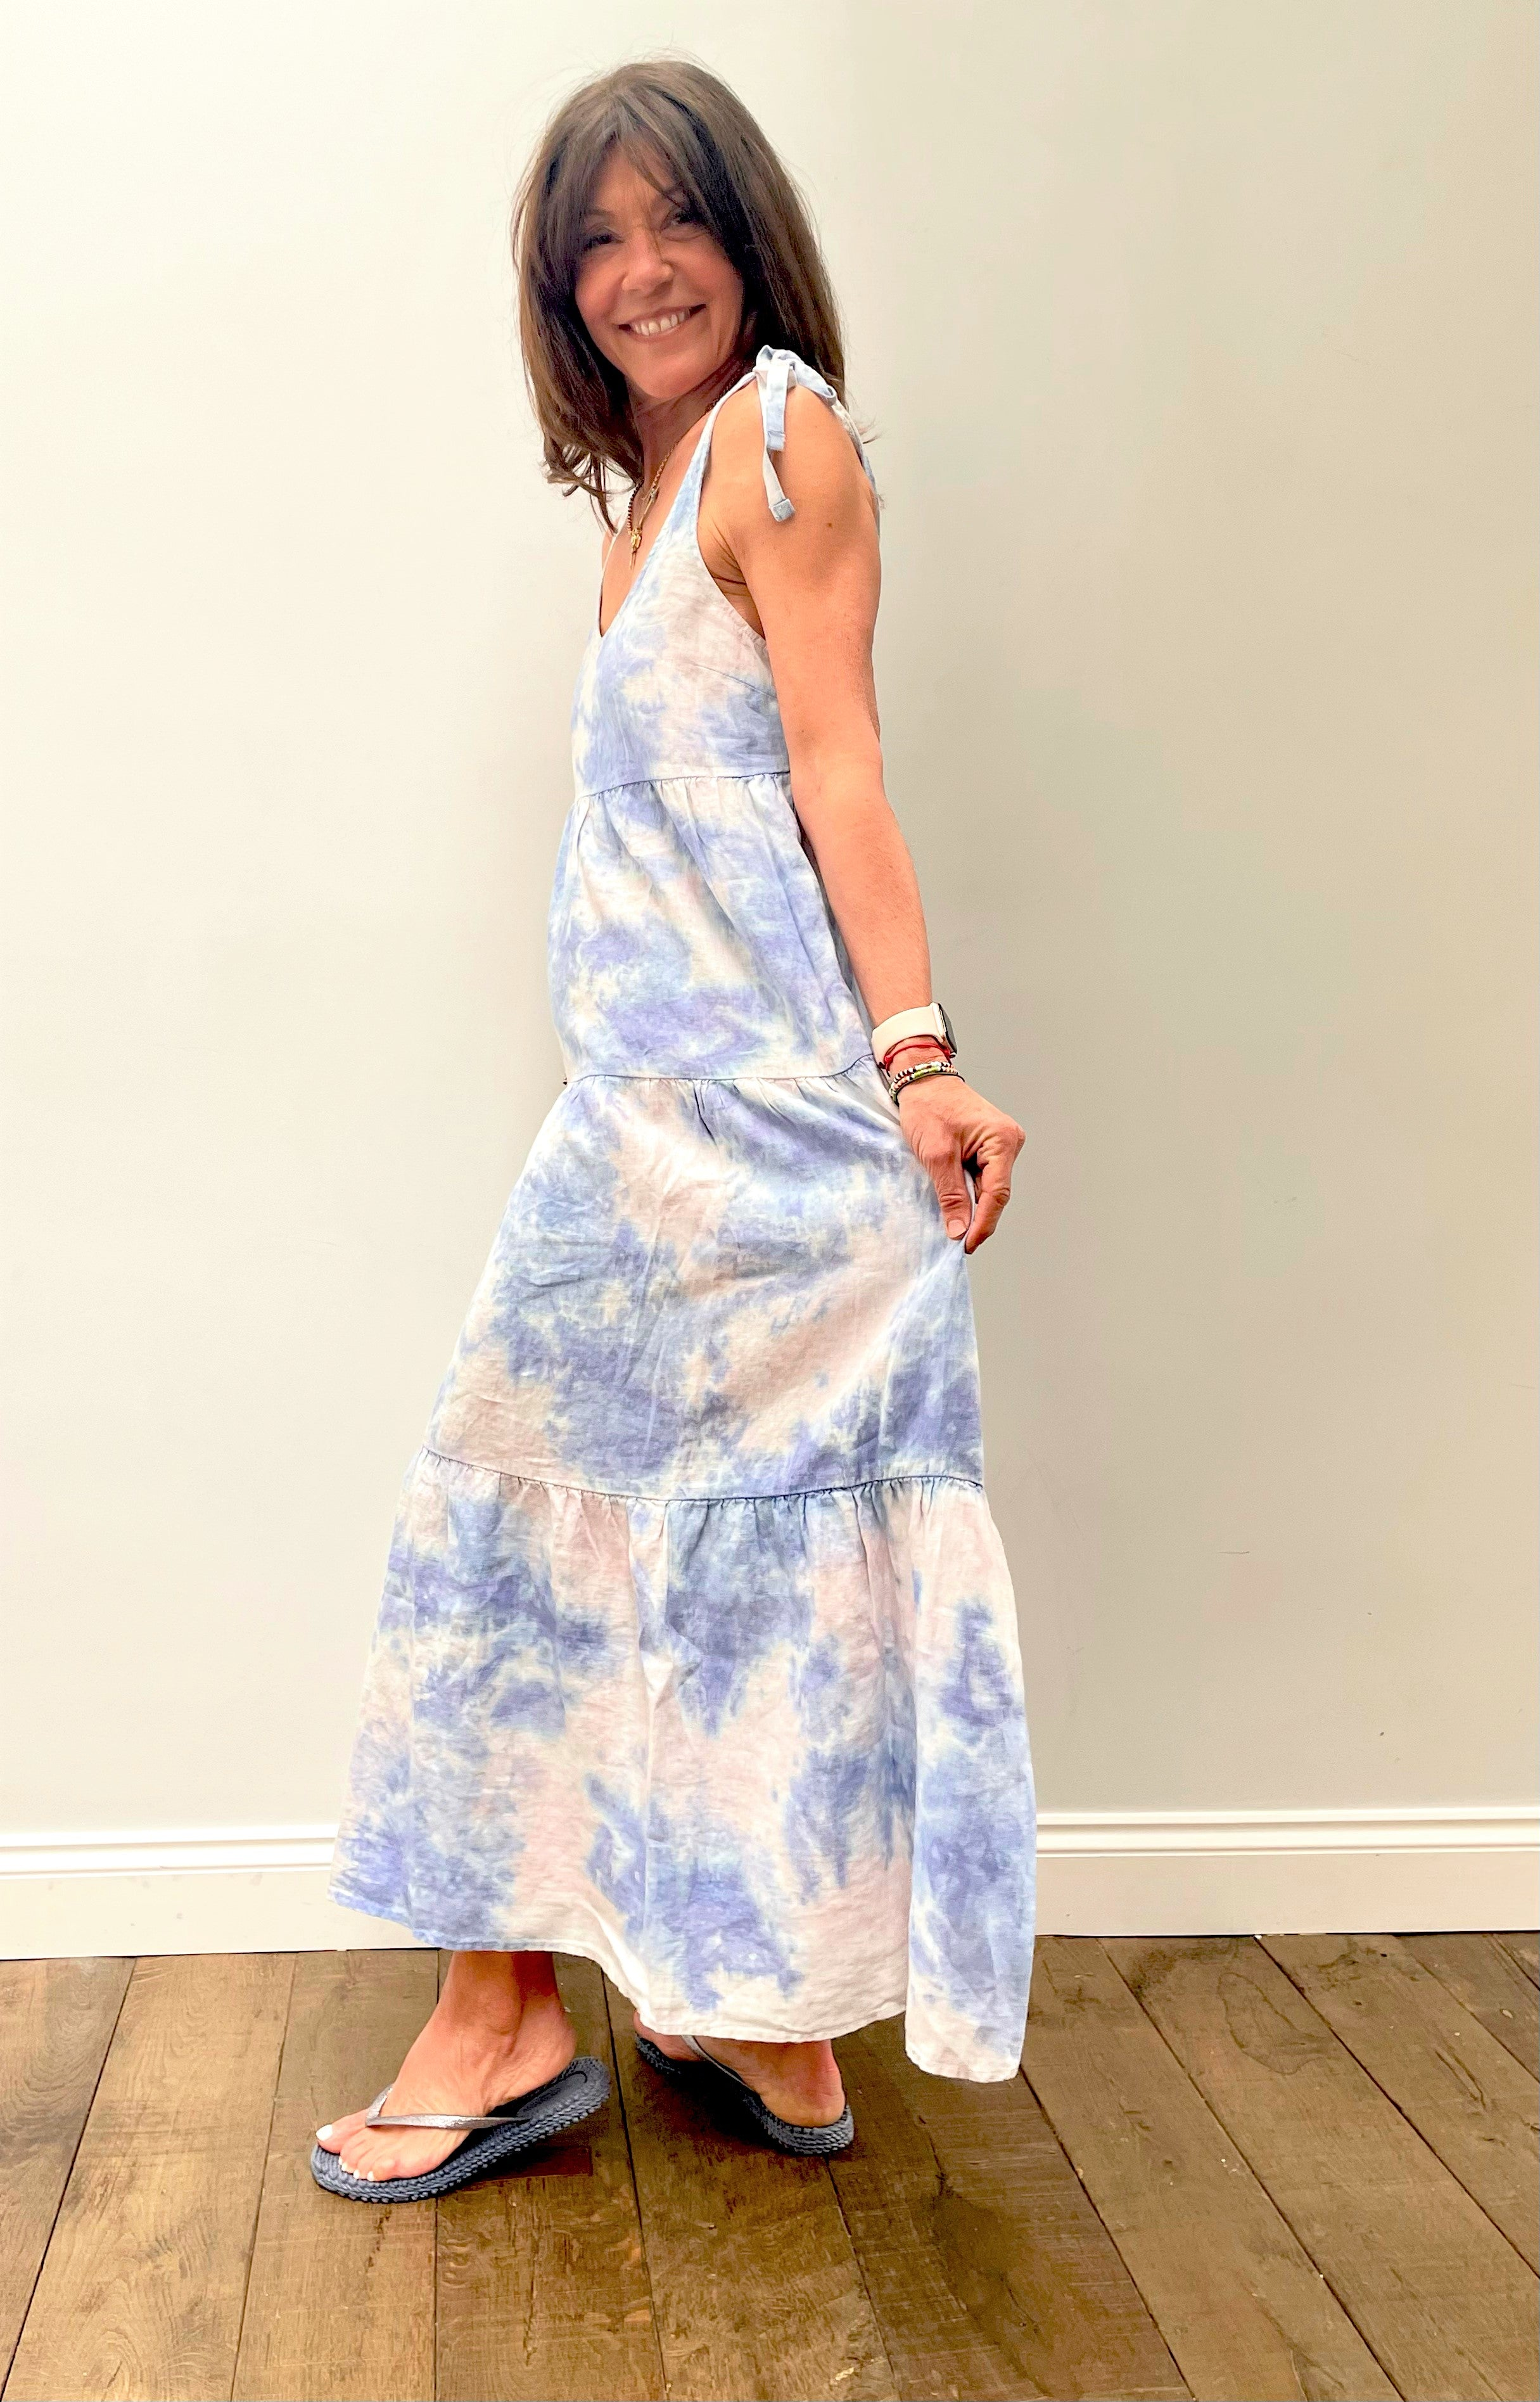 BD Tie Shoulder Maxi Tier Dress 6190  in Galaxy Tie Dye